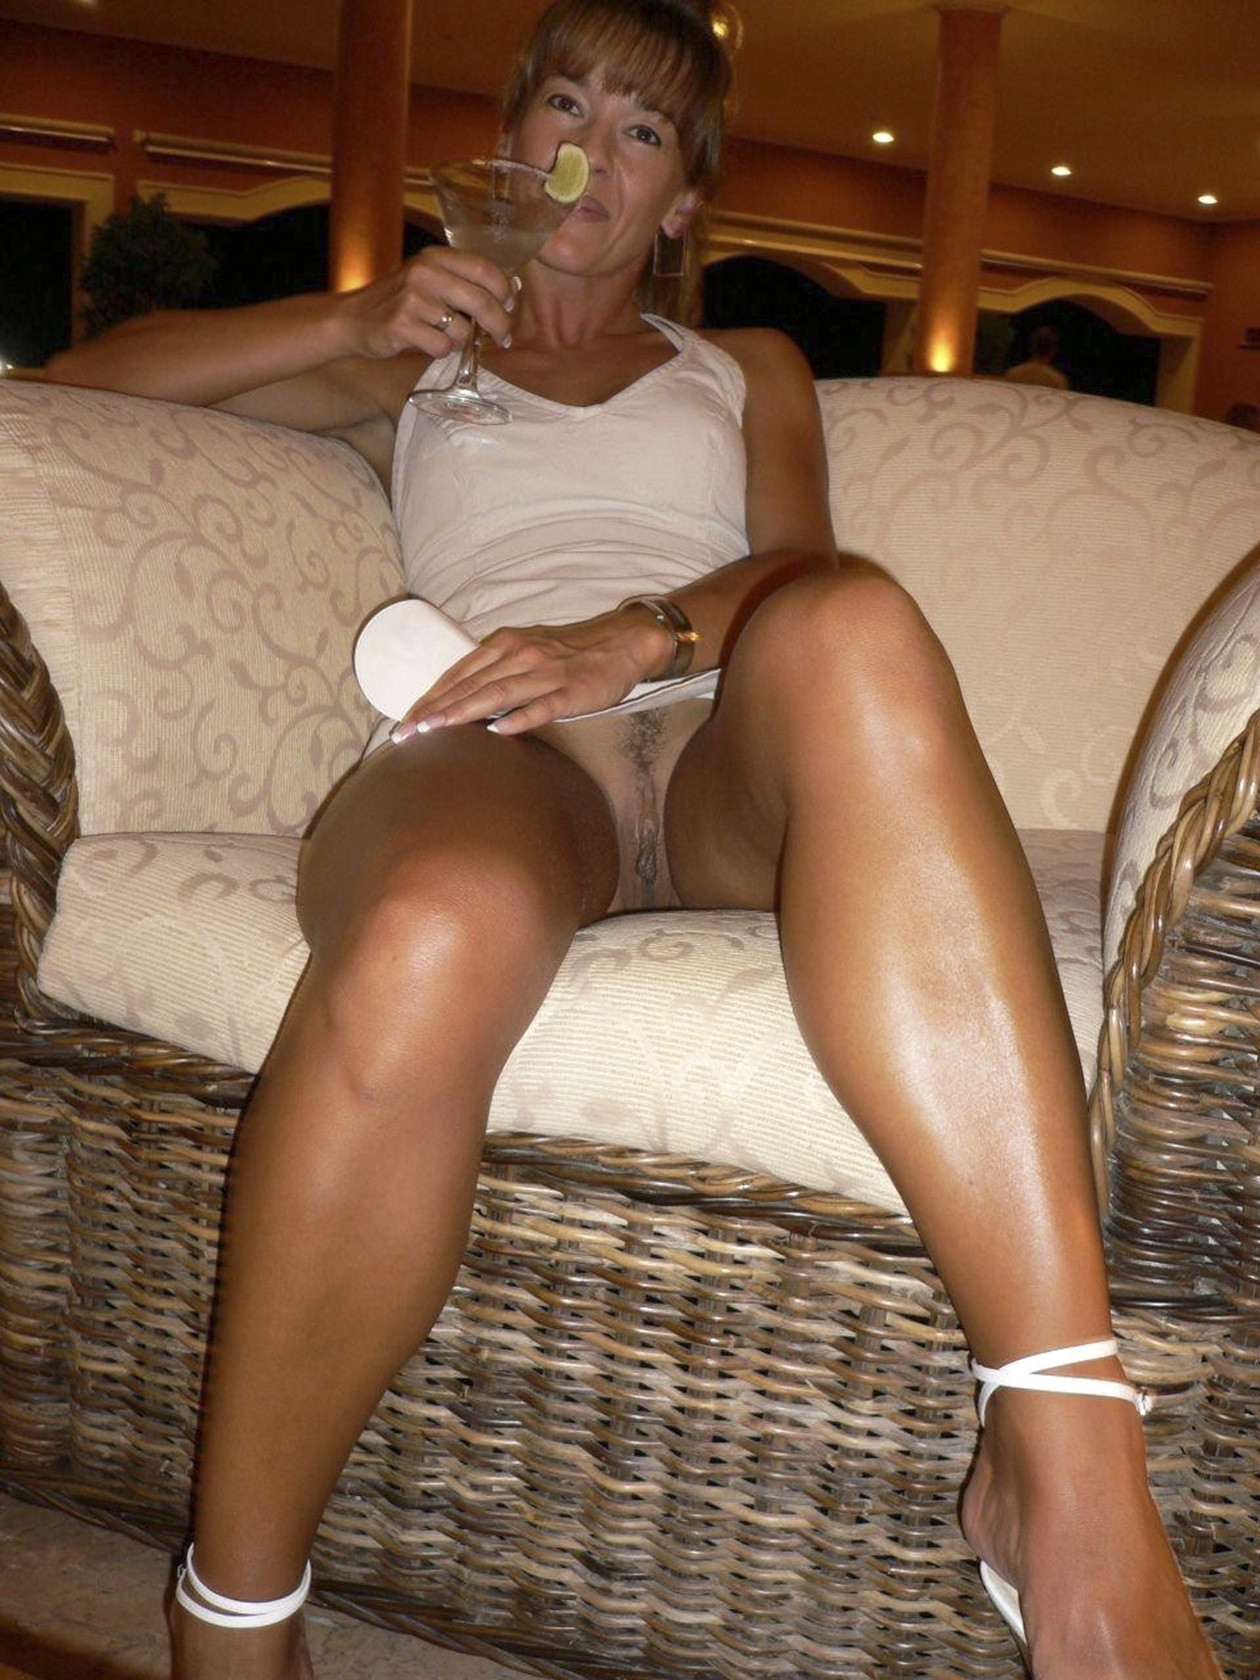 milf upskirt in public - xxx photo